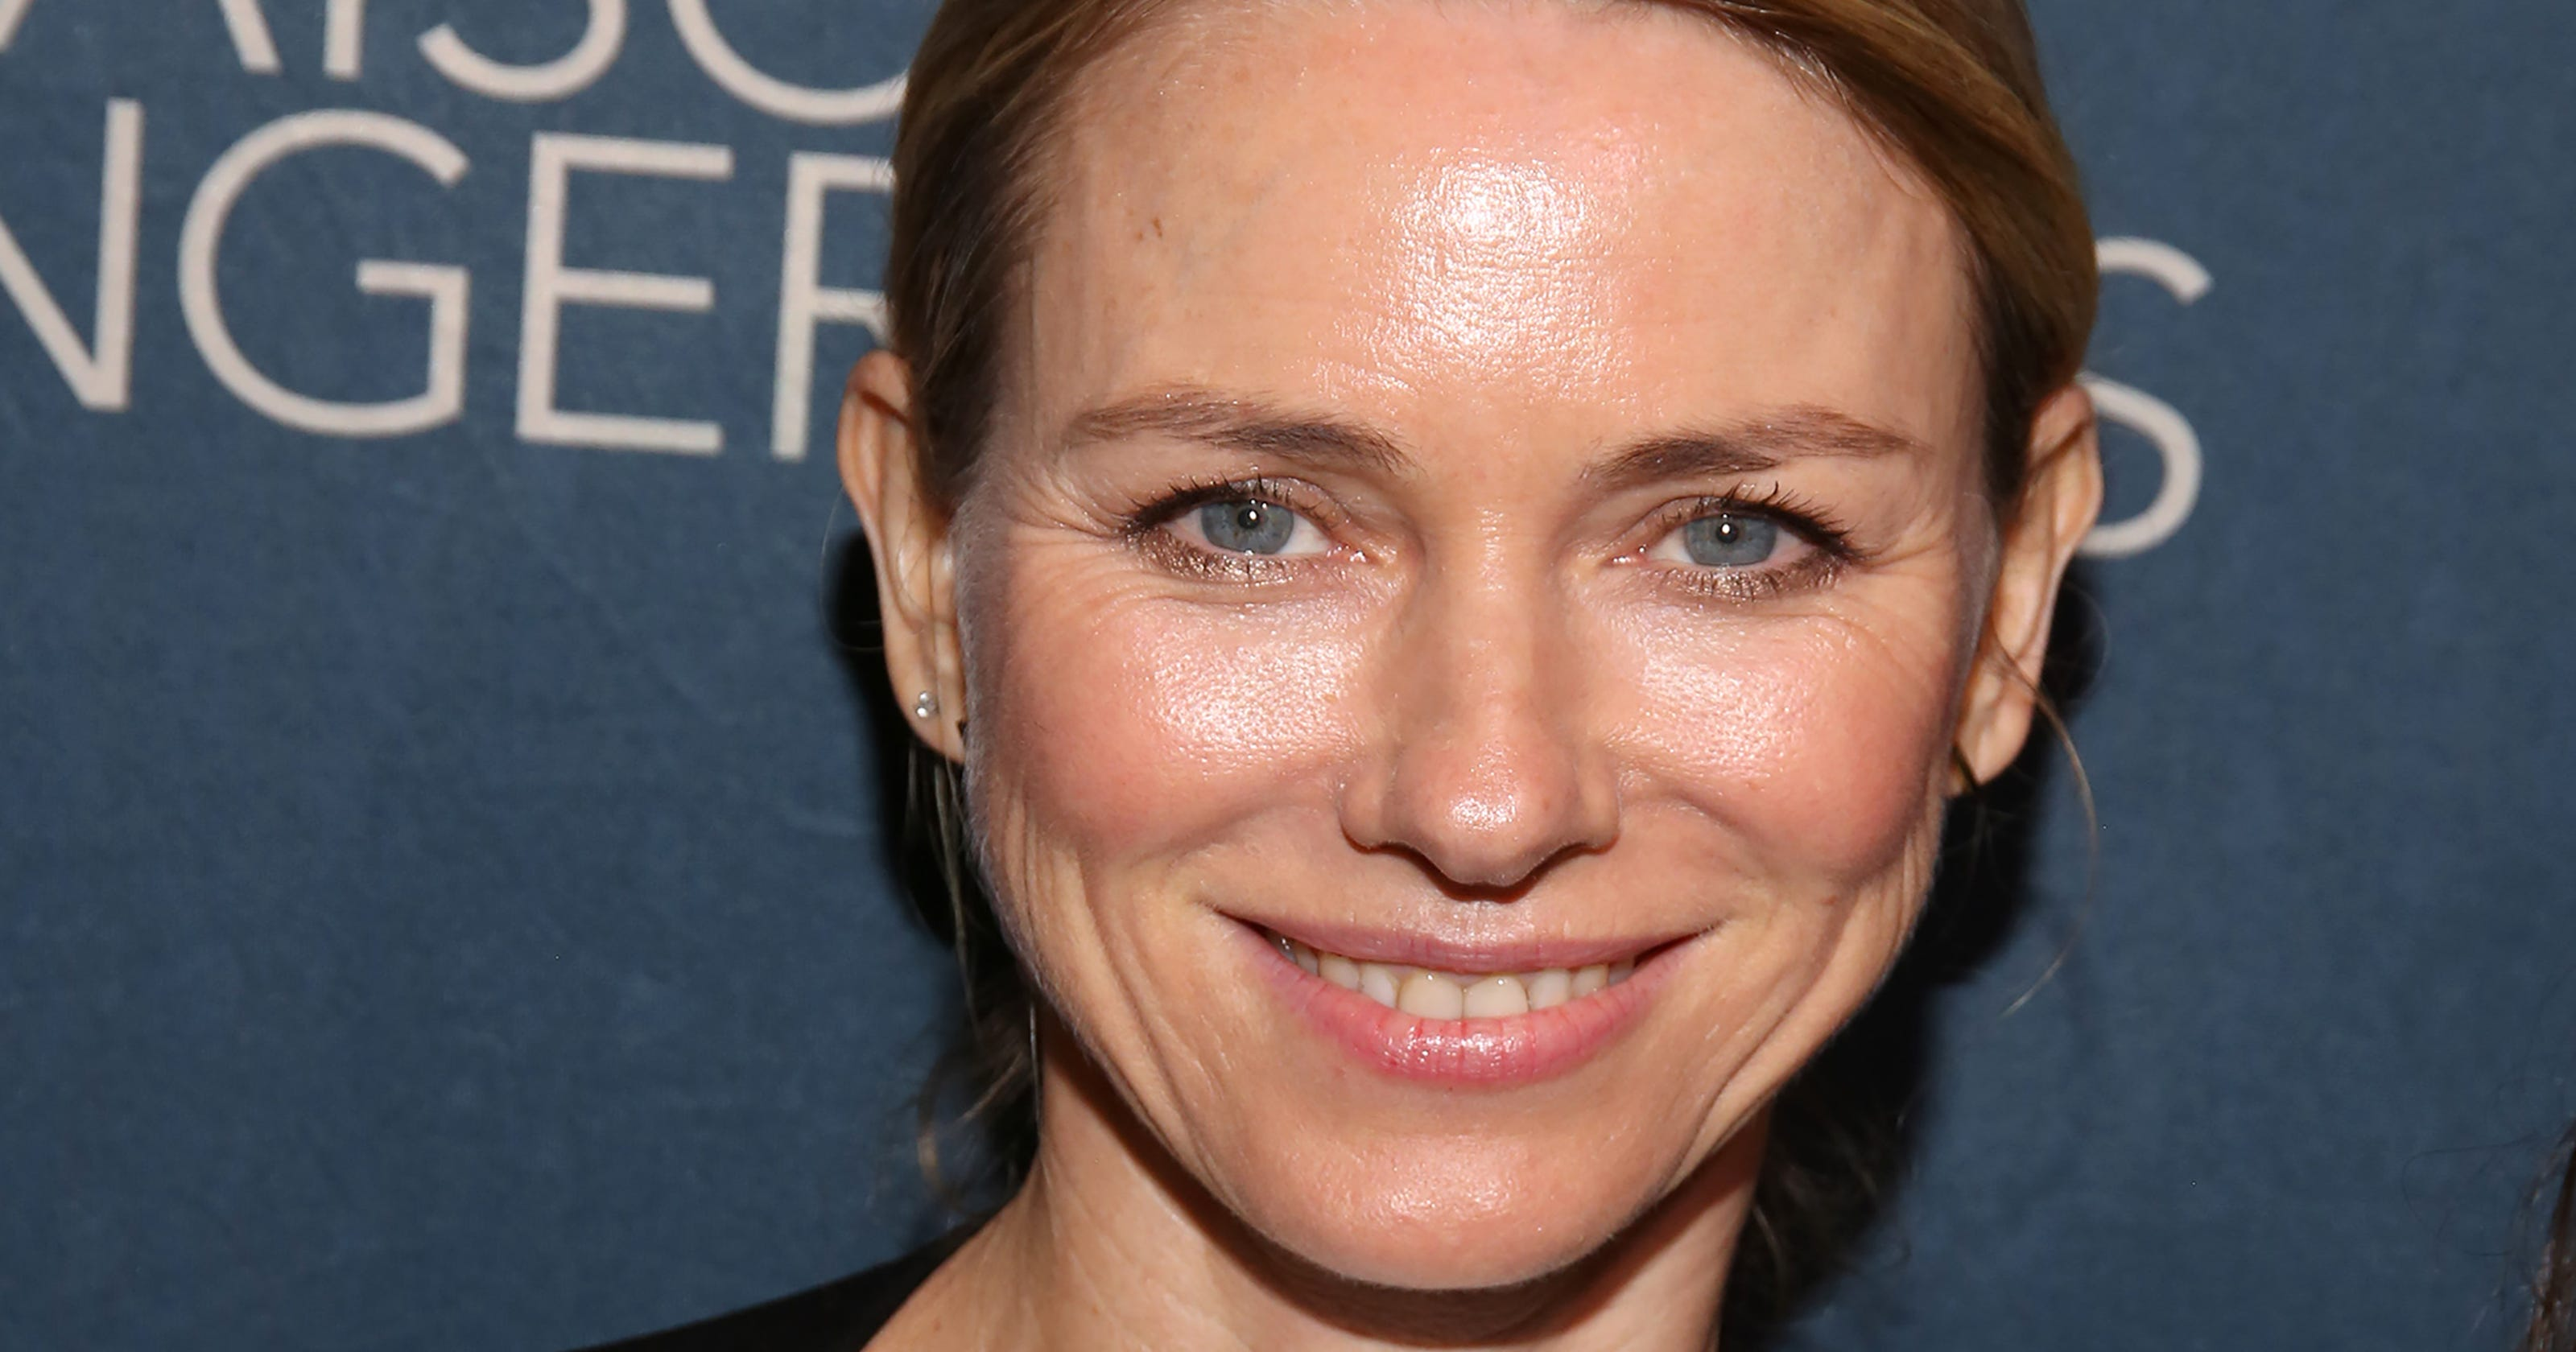 Naomi Watts on split from Liev Schreiber: 'Transitions are ...